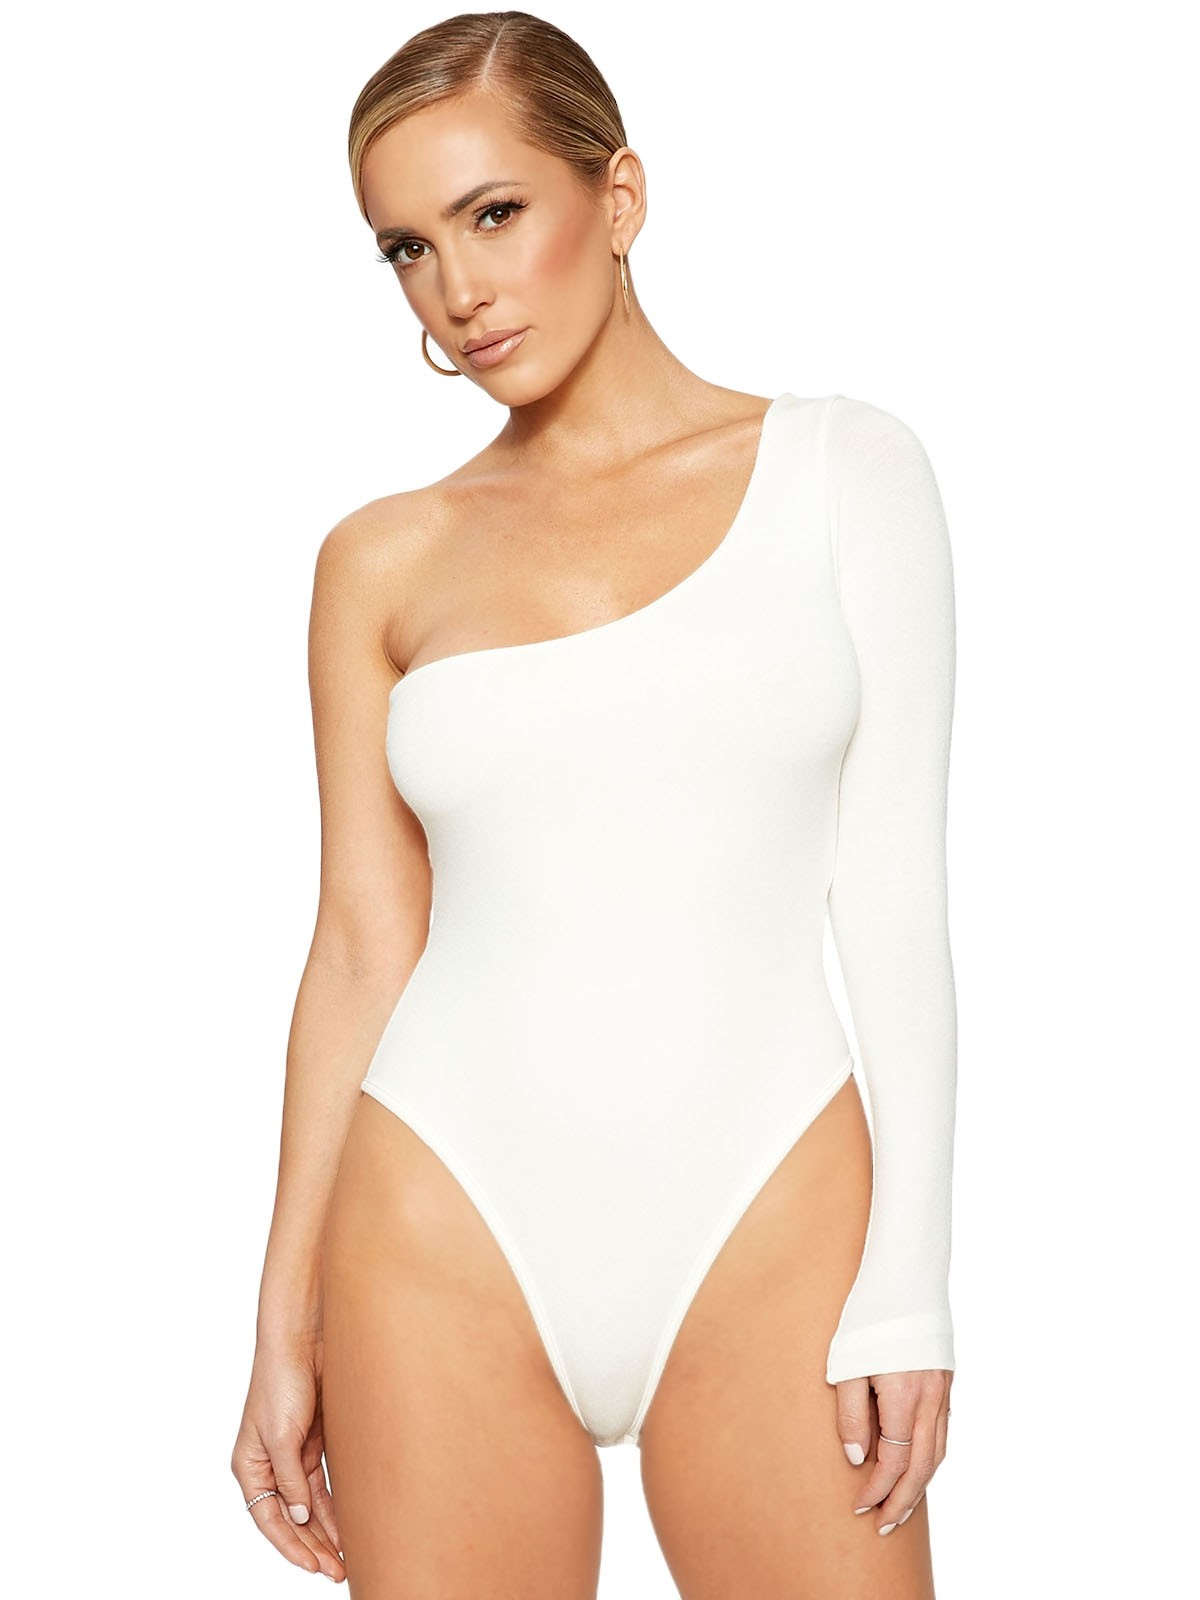 The NW Side Piece Bodysuit by Naked Wardrobe, available on nakedwardrobe.com for $40 Kylie Jenner Top SIMILAR PRODUCT